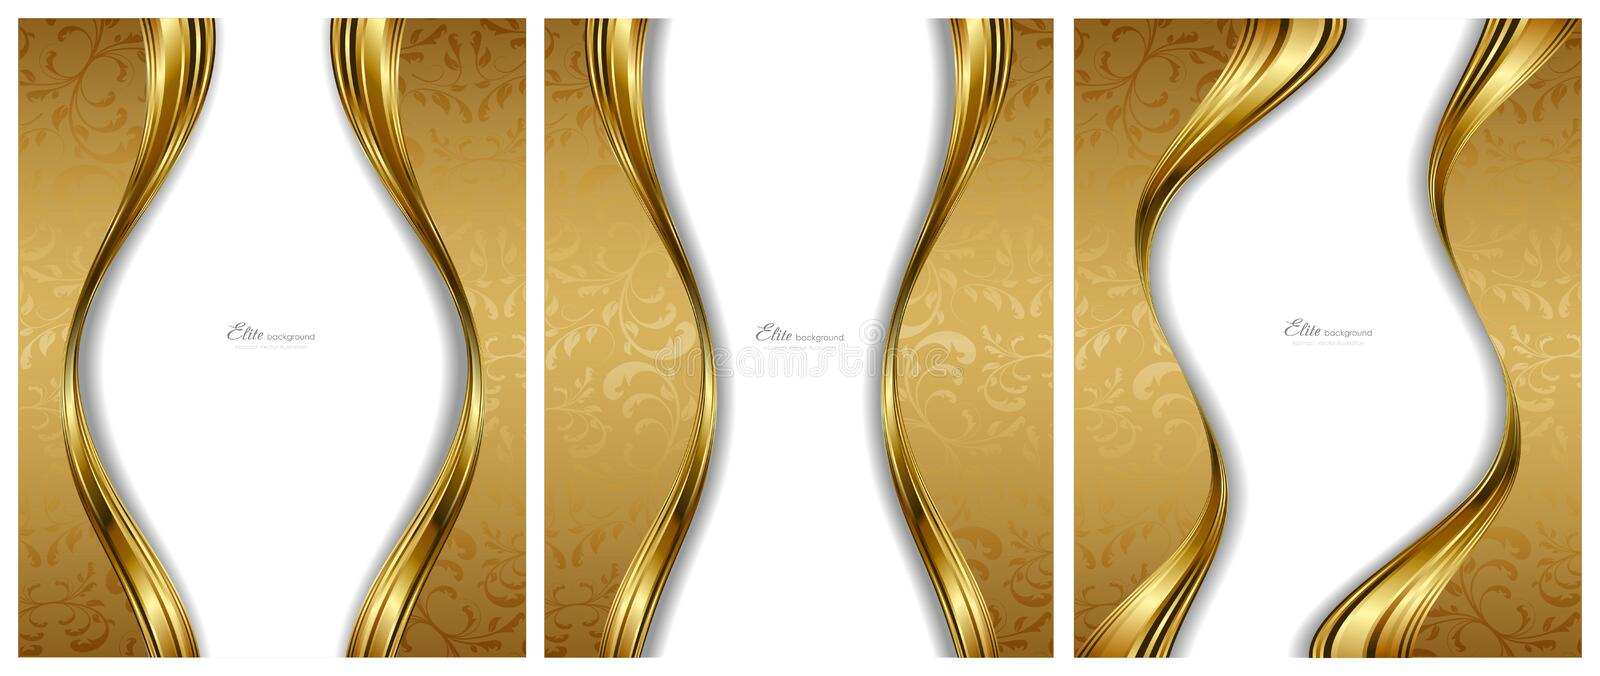 Download Abstract Gold Backgrounds Templates Stock Vector - Illustration of blur, image: 22163228